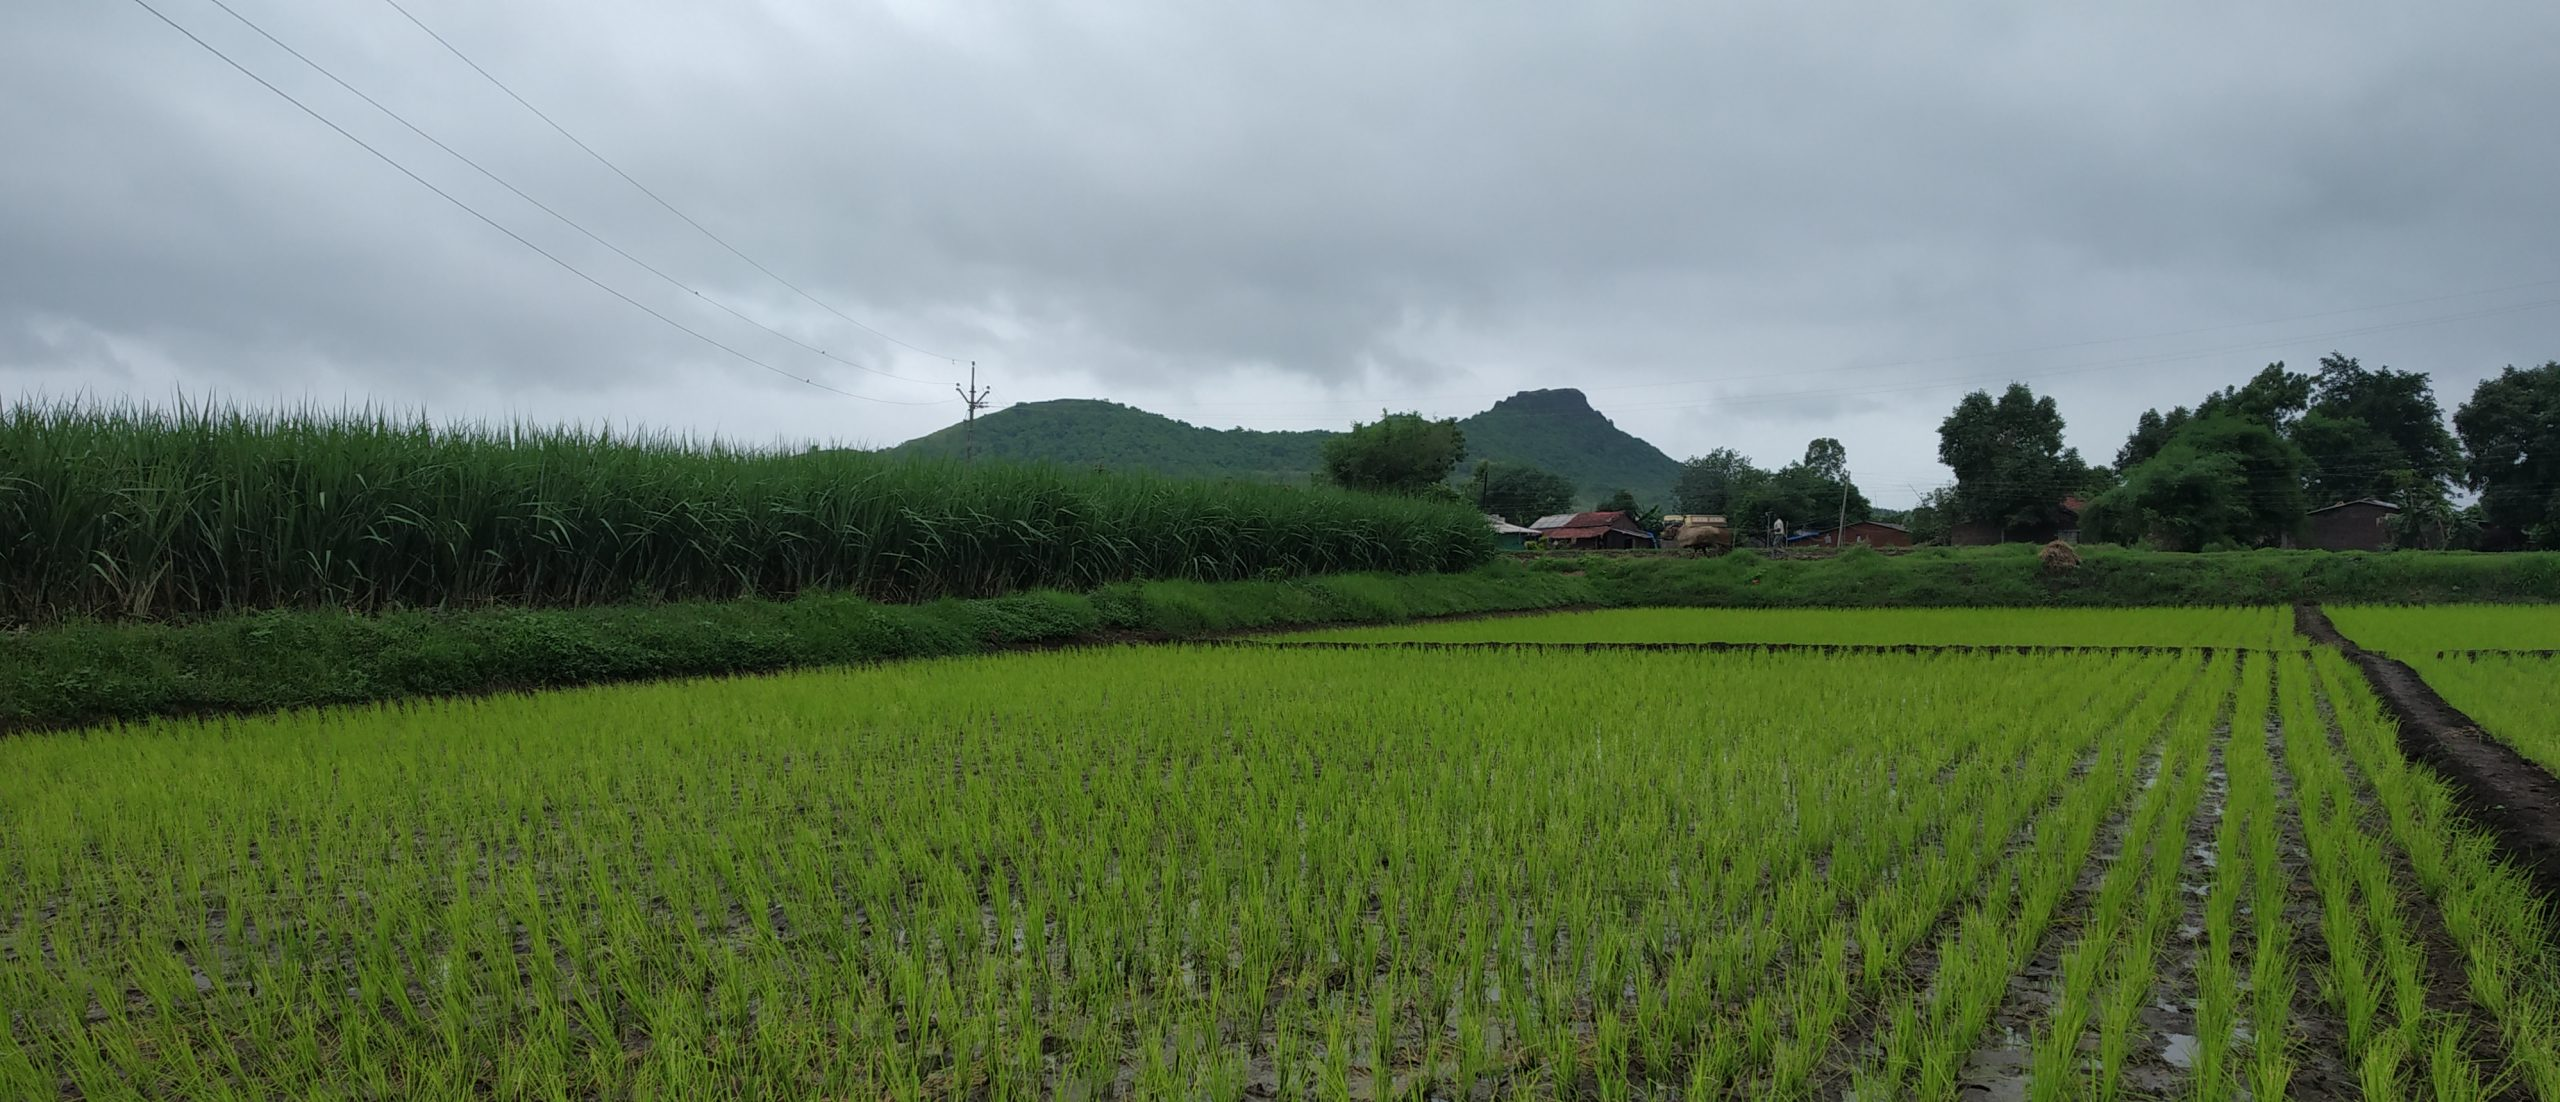 A cultivated paddy field